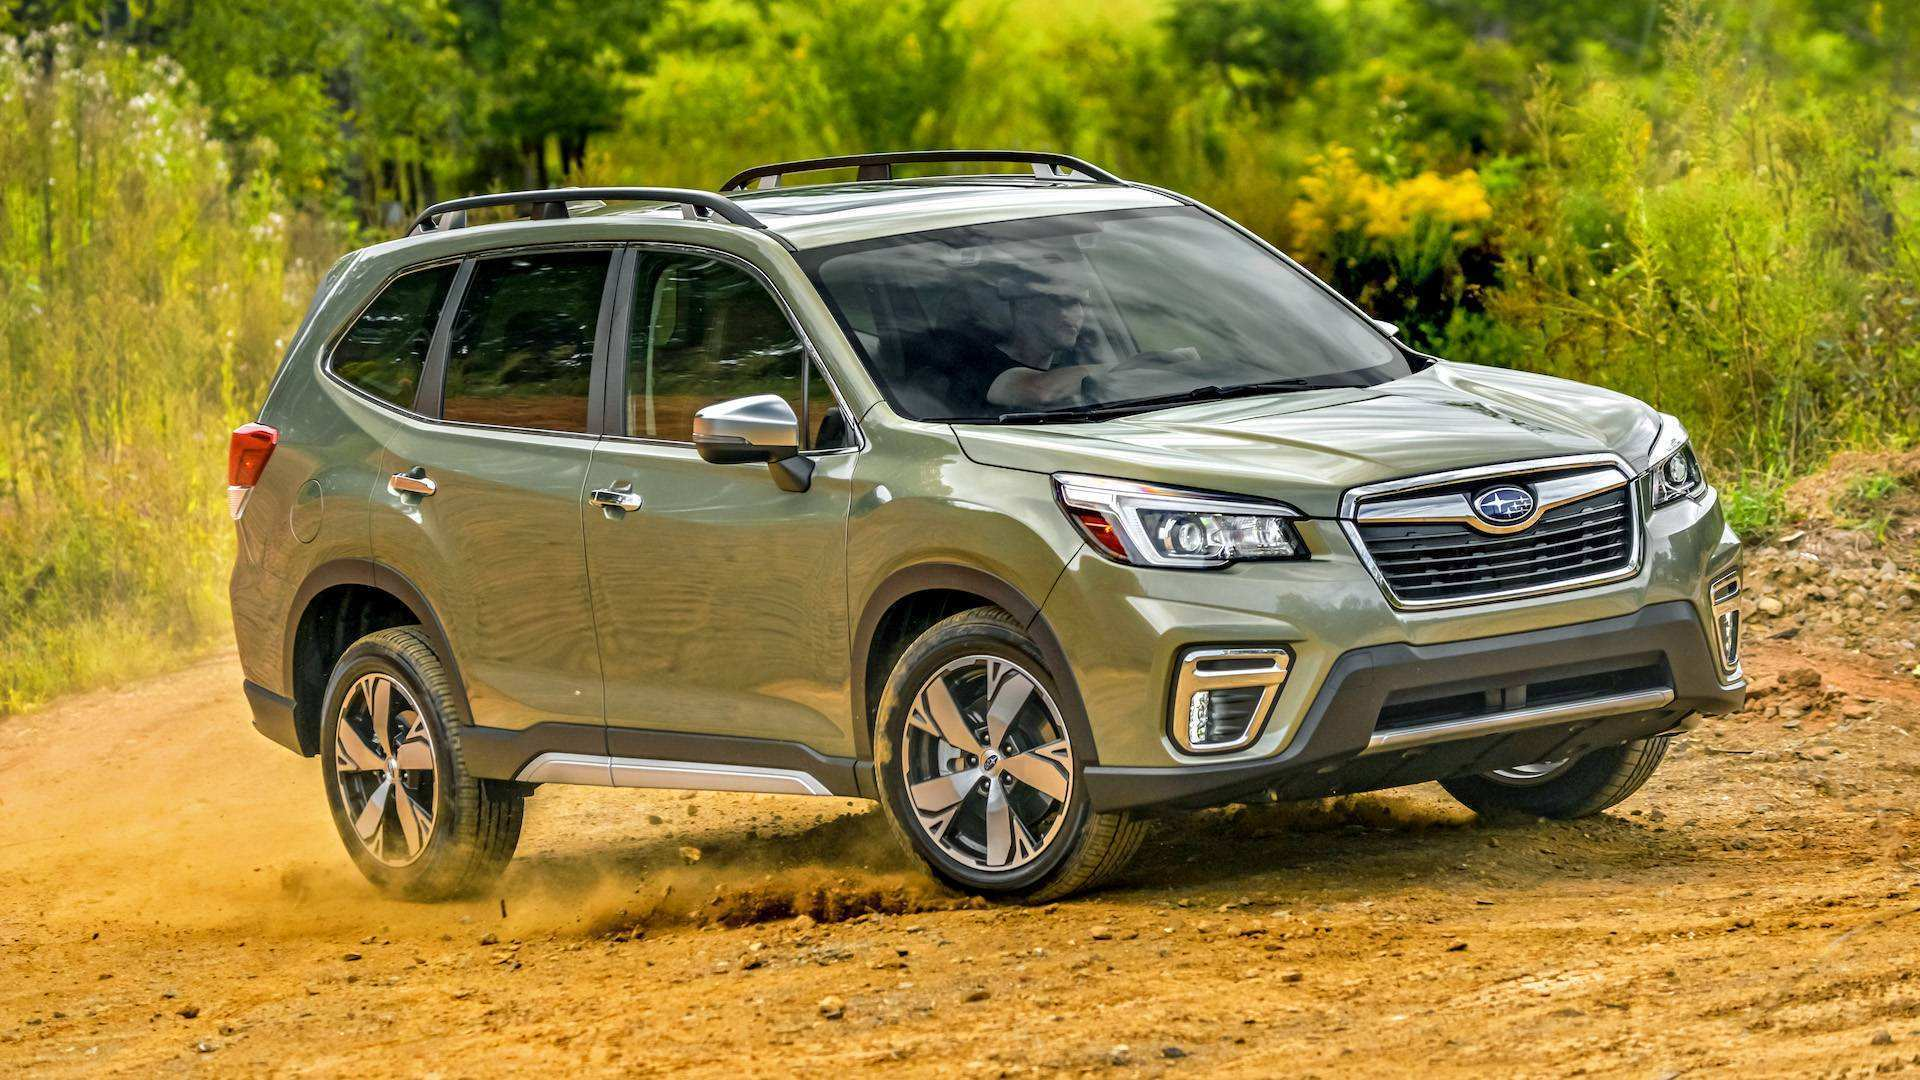 69 Best Review The 2019 Subaru Forester First Drive for The 2019 Subaru Forester